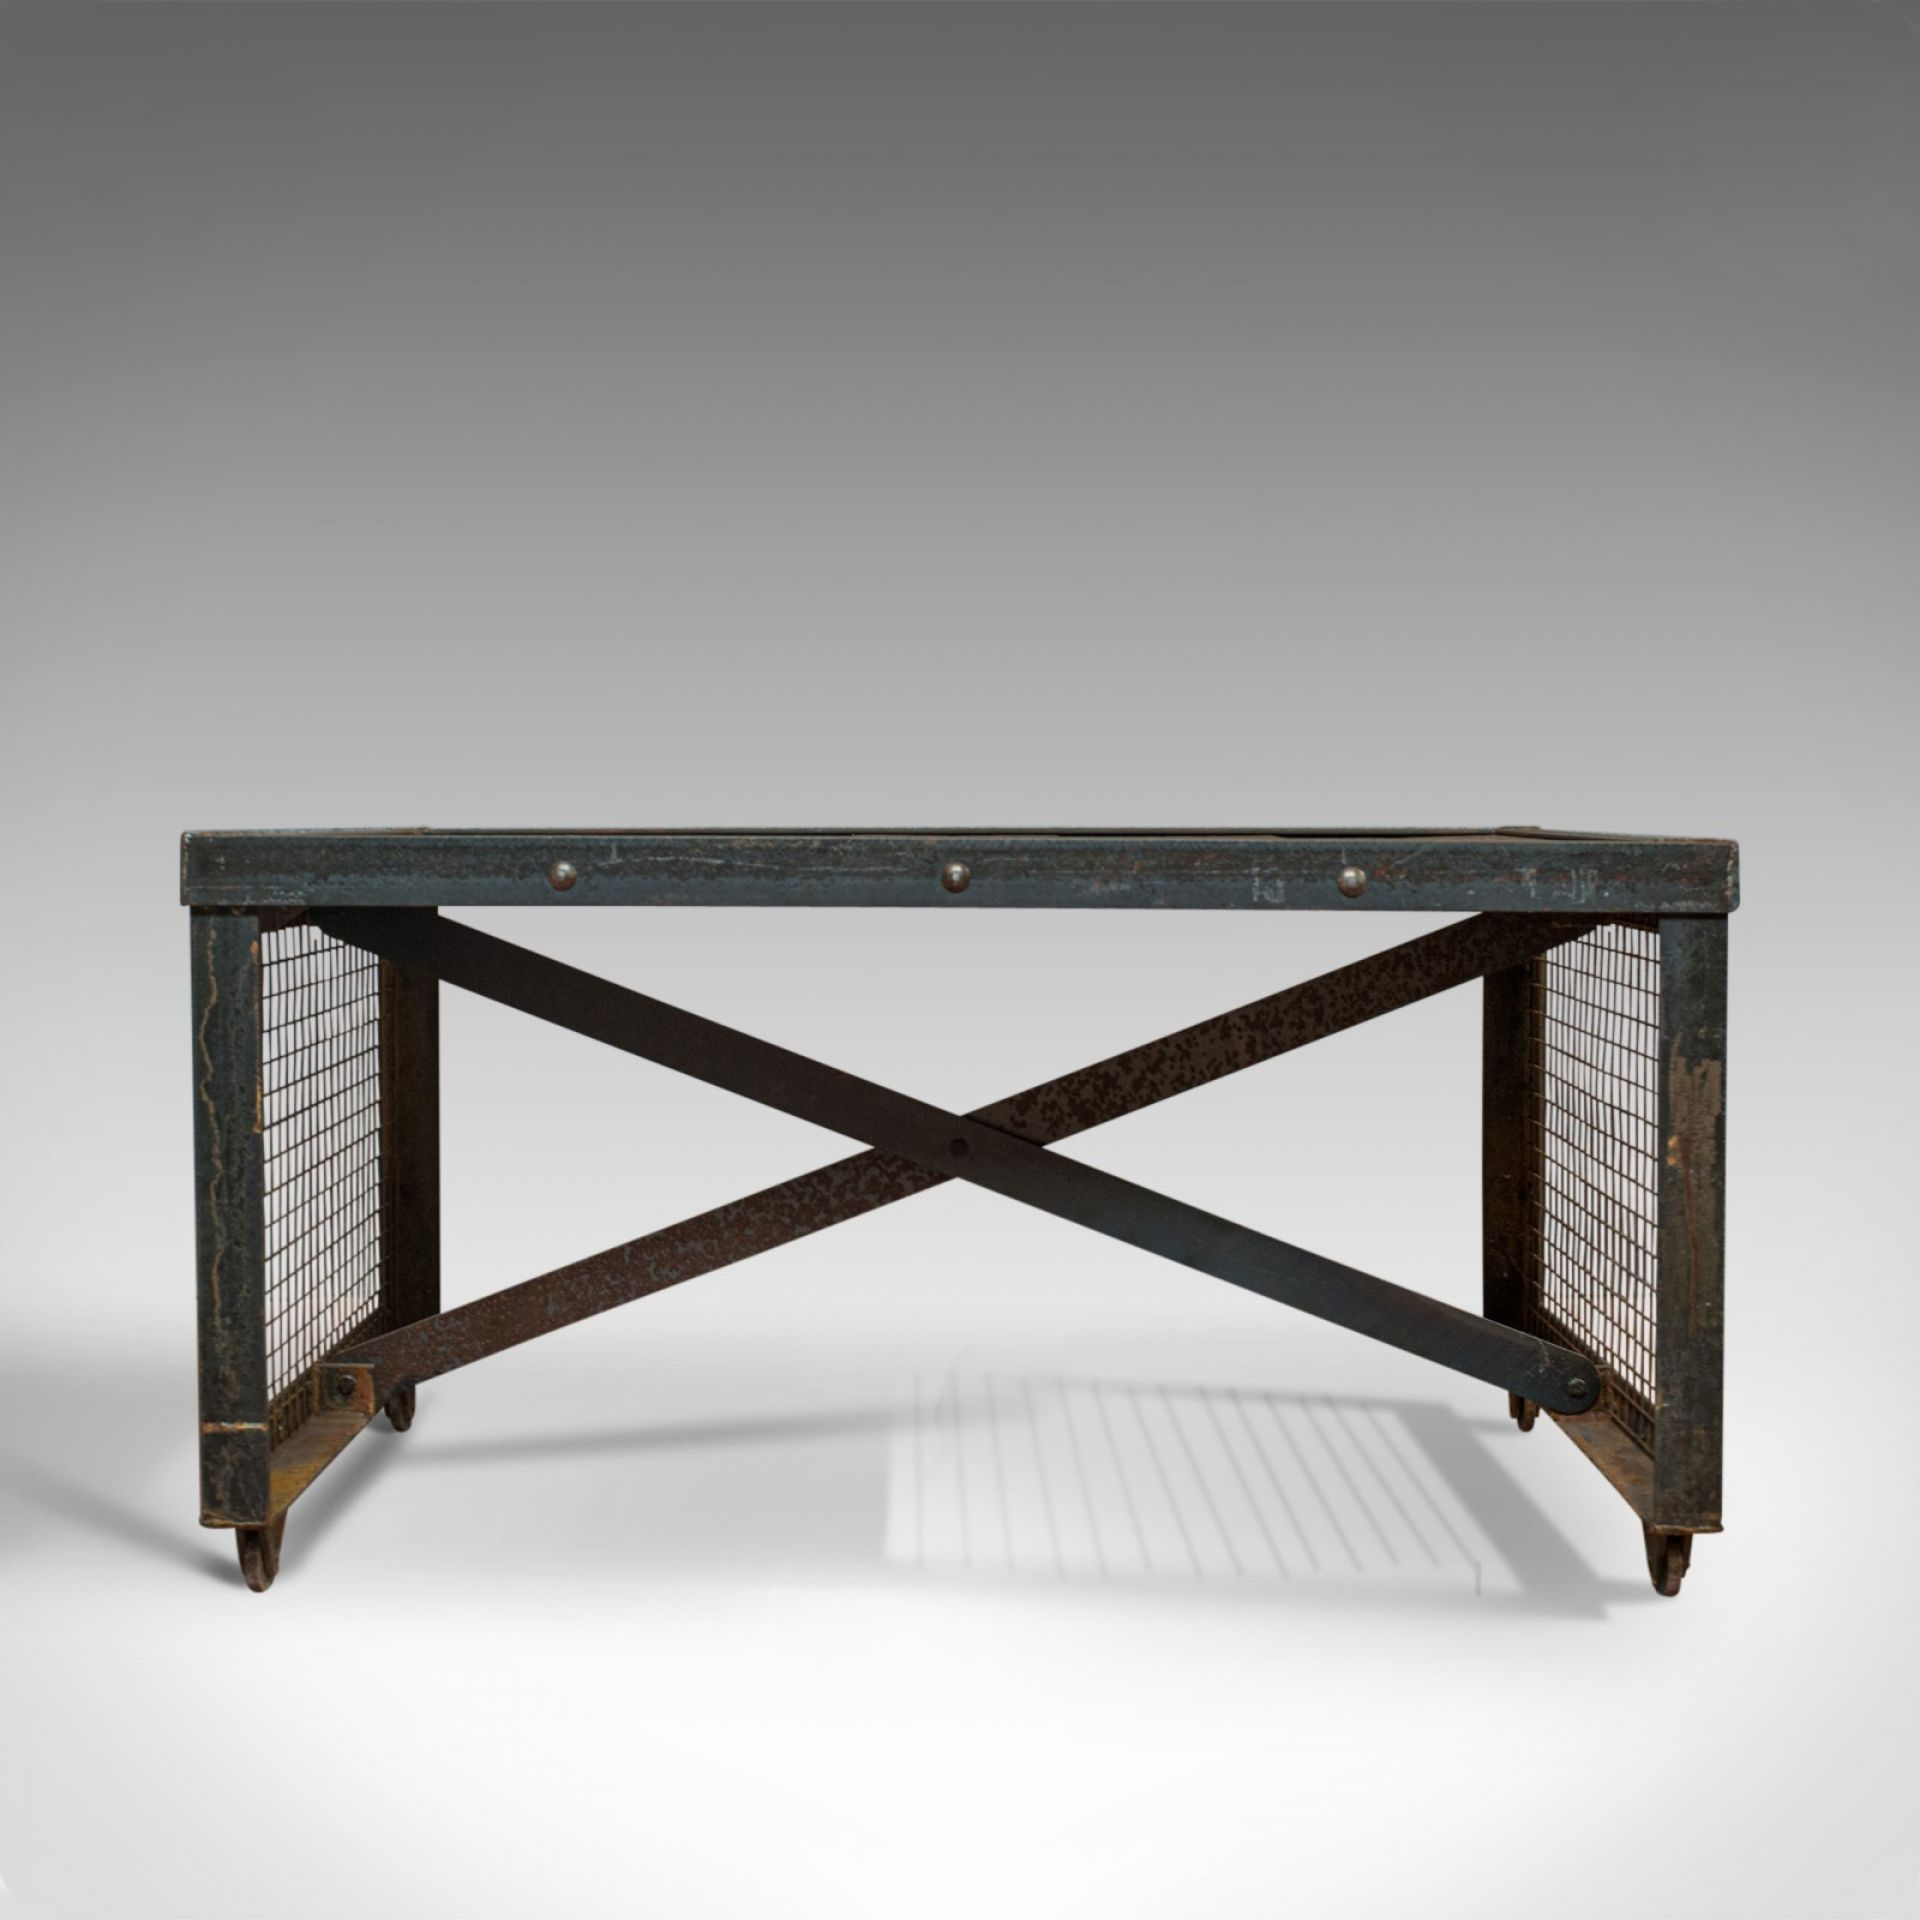 Vintage Industrial Coffee Table, English, Steel, Oak, Late 20th Century